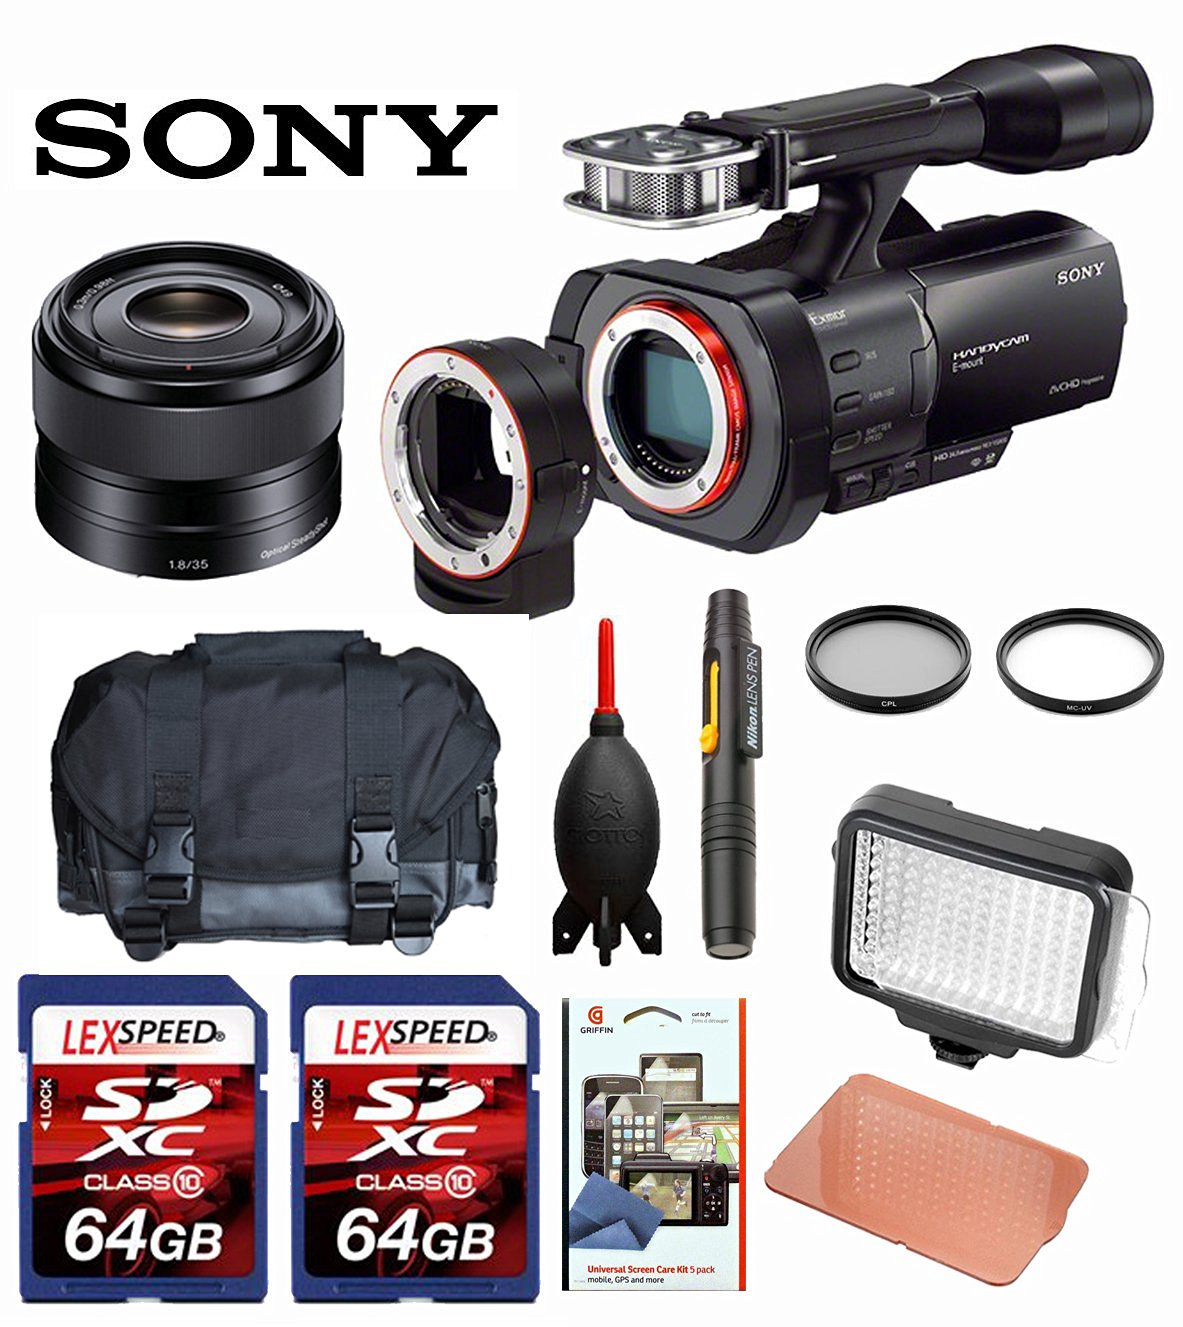 Sony NEX-VG900 Full-Frame Camcorder (Black) + Sony 50mm f/1.8 Mid-Range Lens + Case + LED 160 + Two 64GB Memory Cards